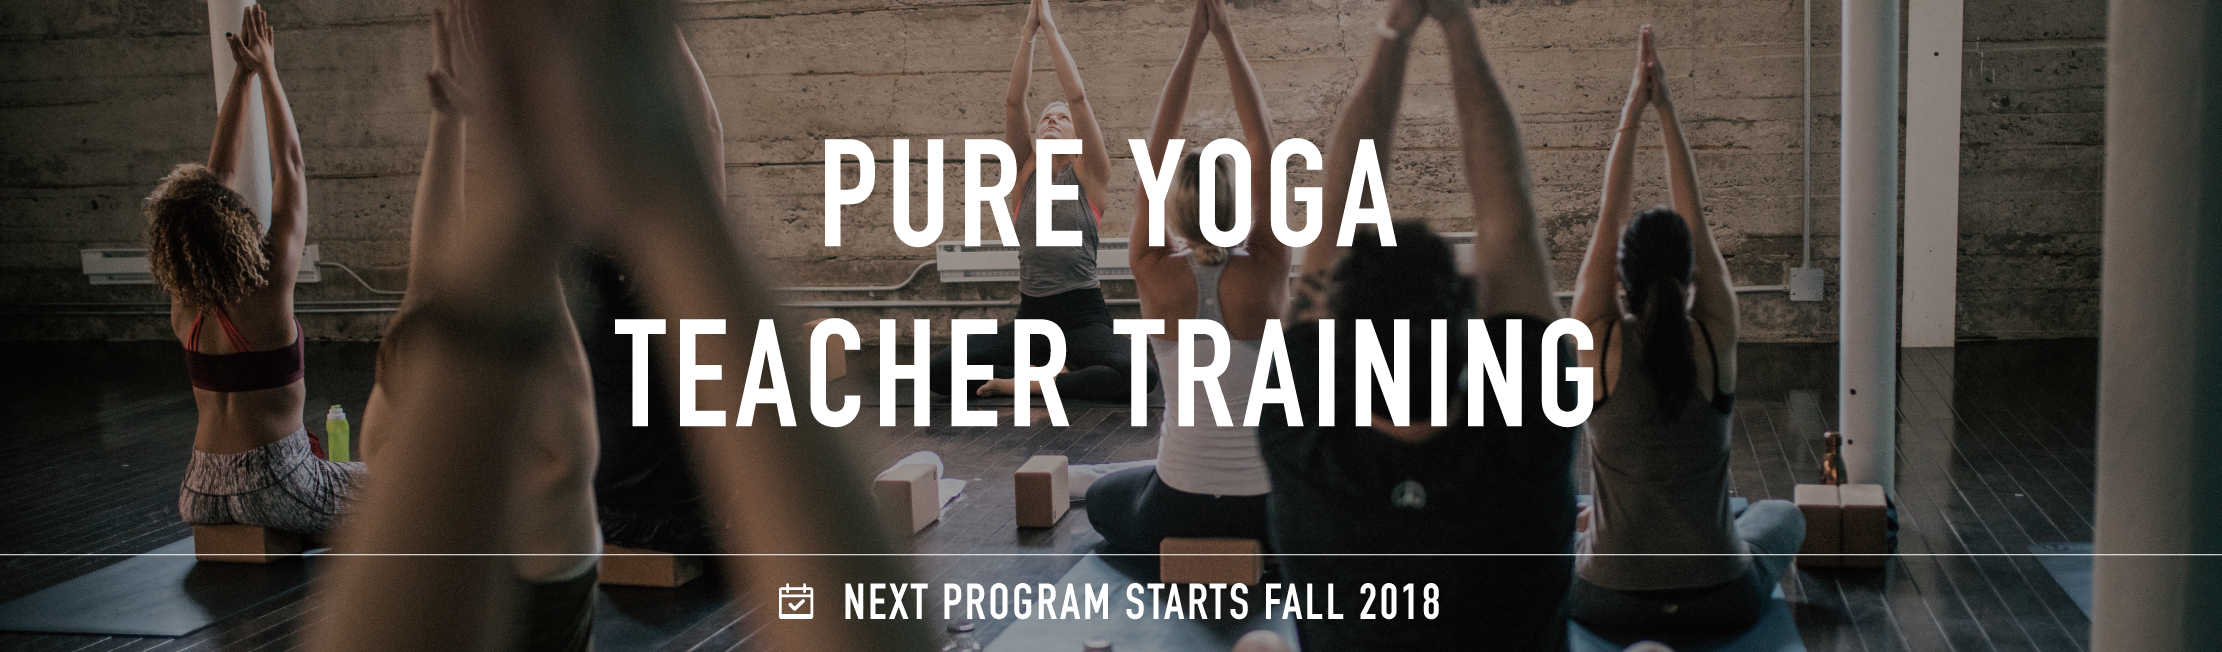 Pure yoga teacher training banner  3